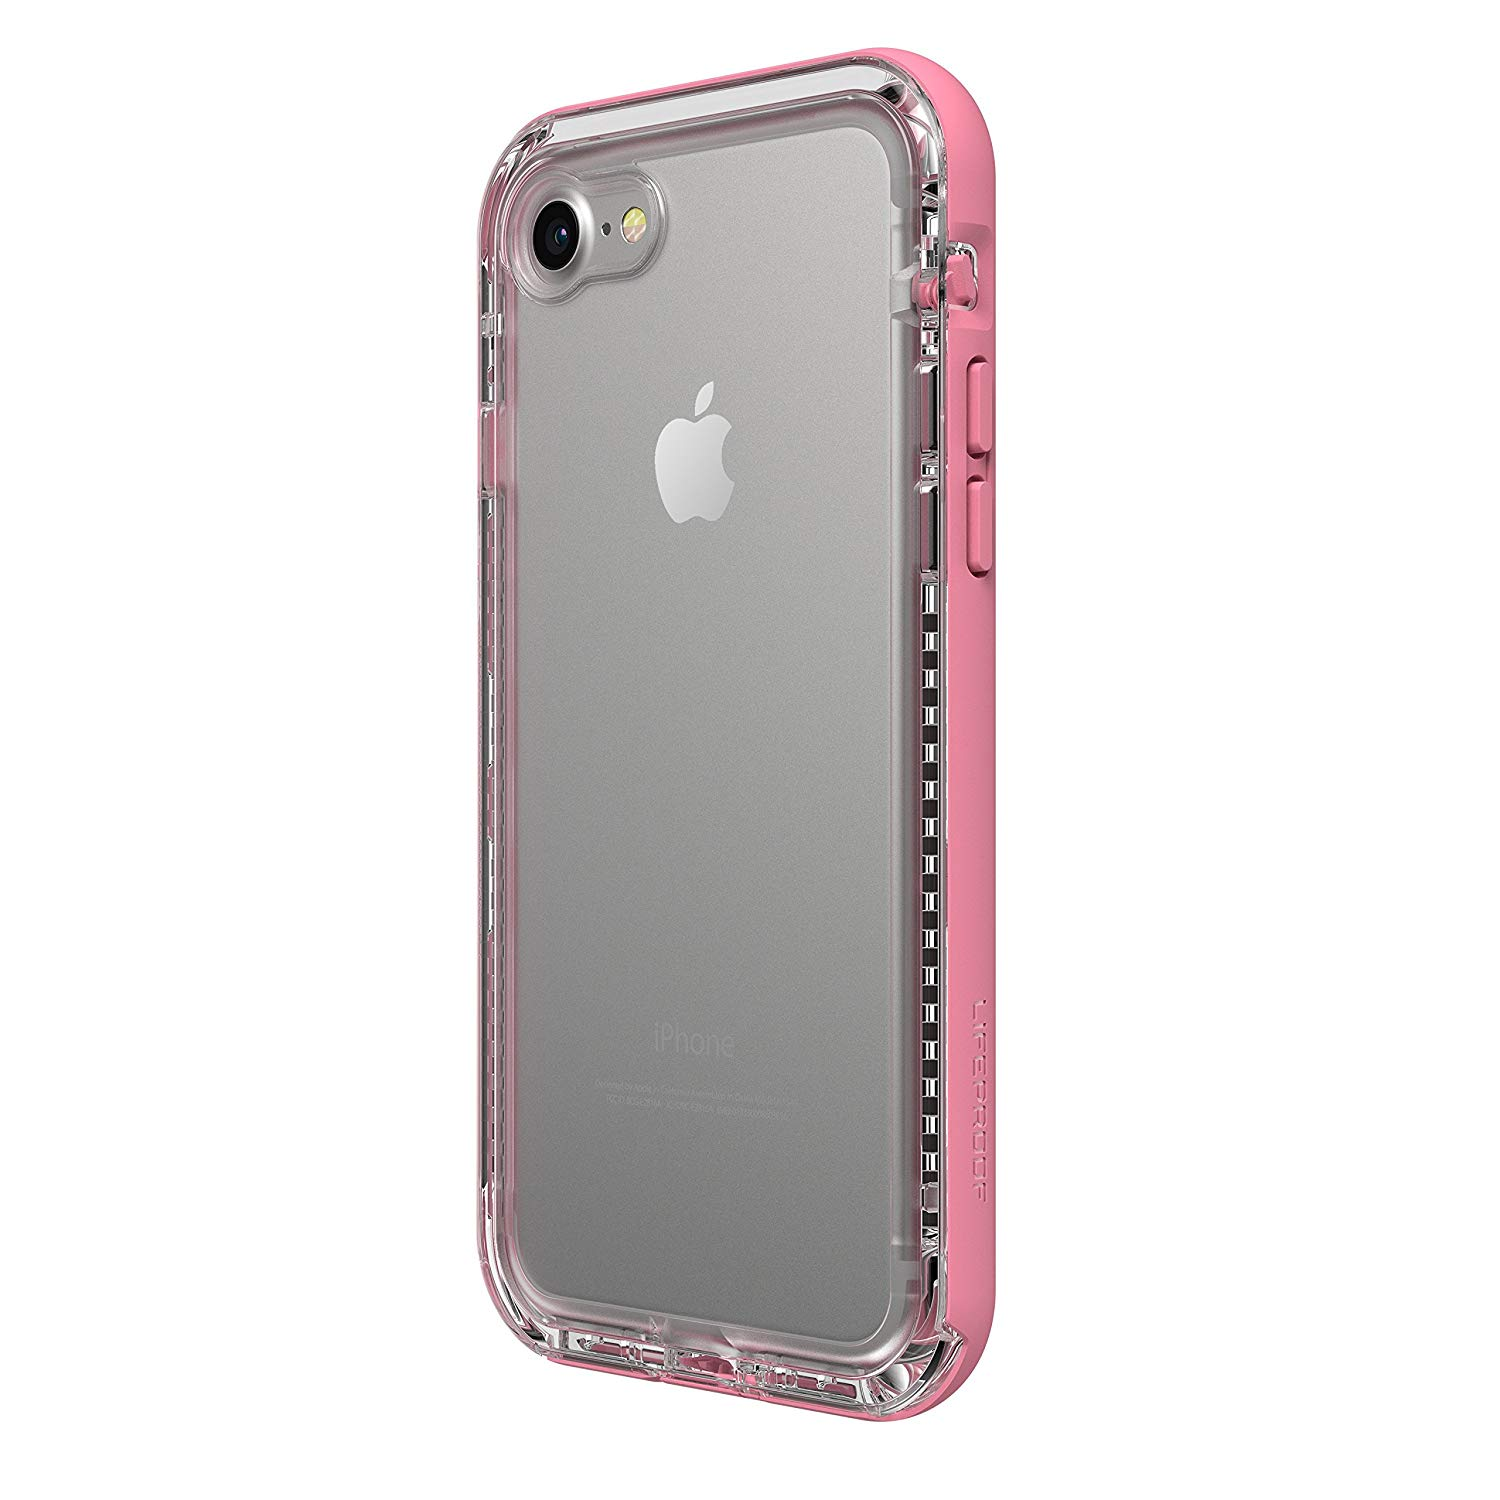 timeless design 80397 788eb Lifeproof Next Series Case for iPhone 7/8, Cactus Rose